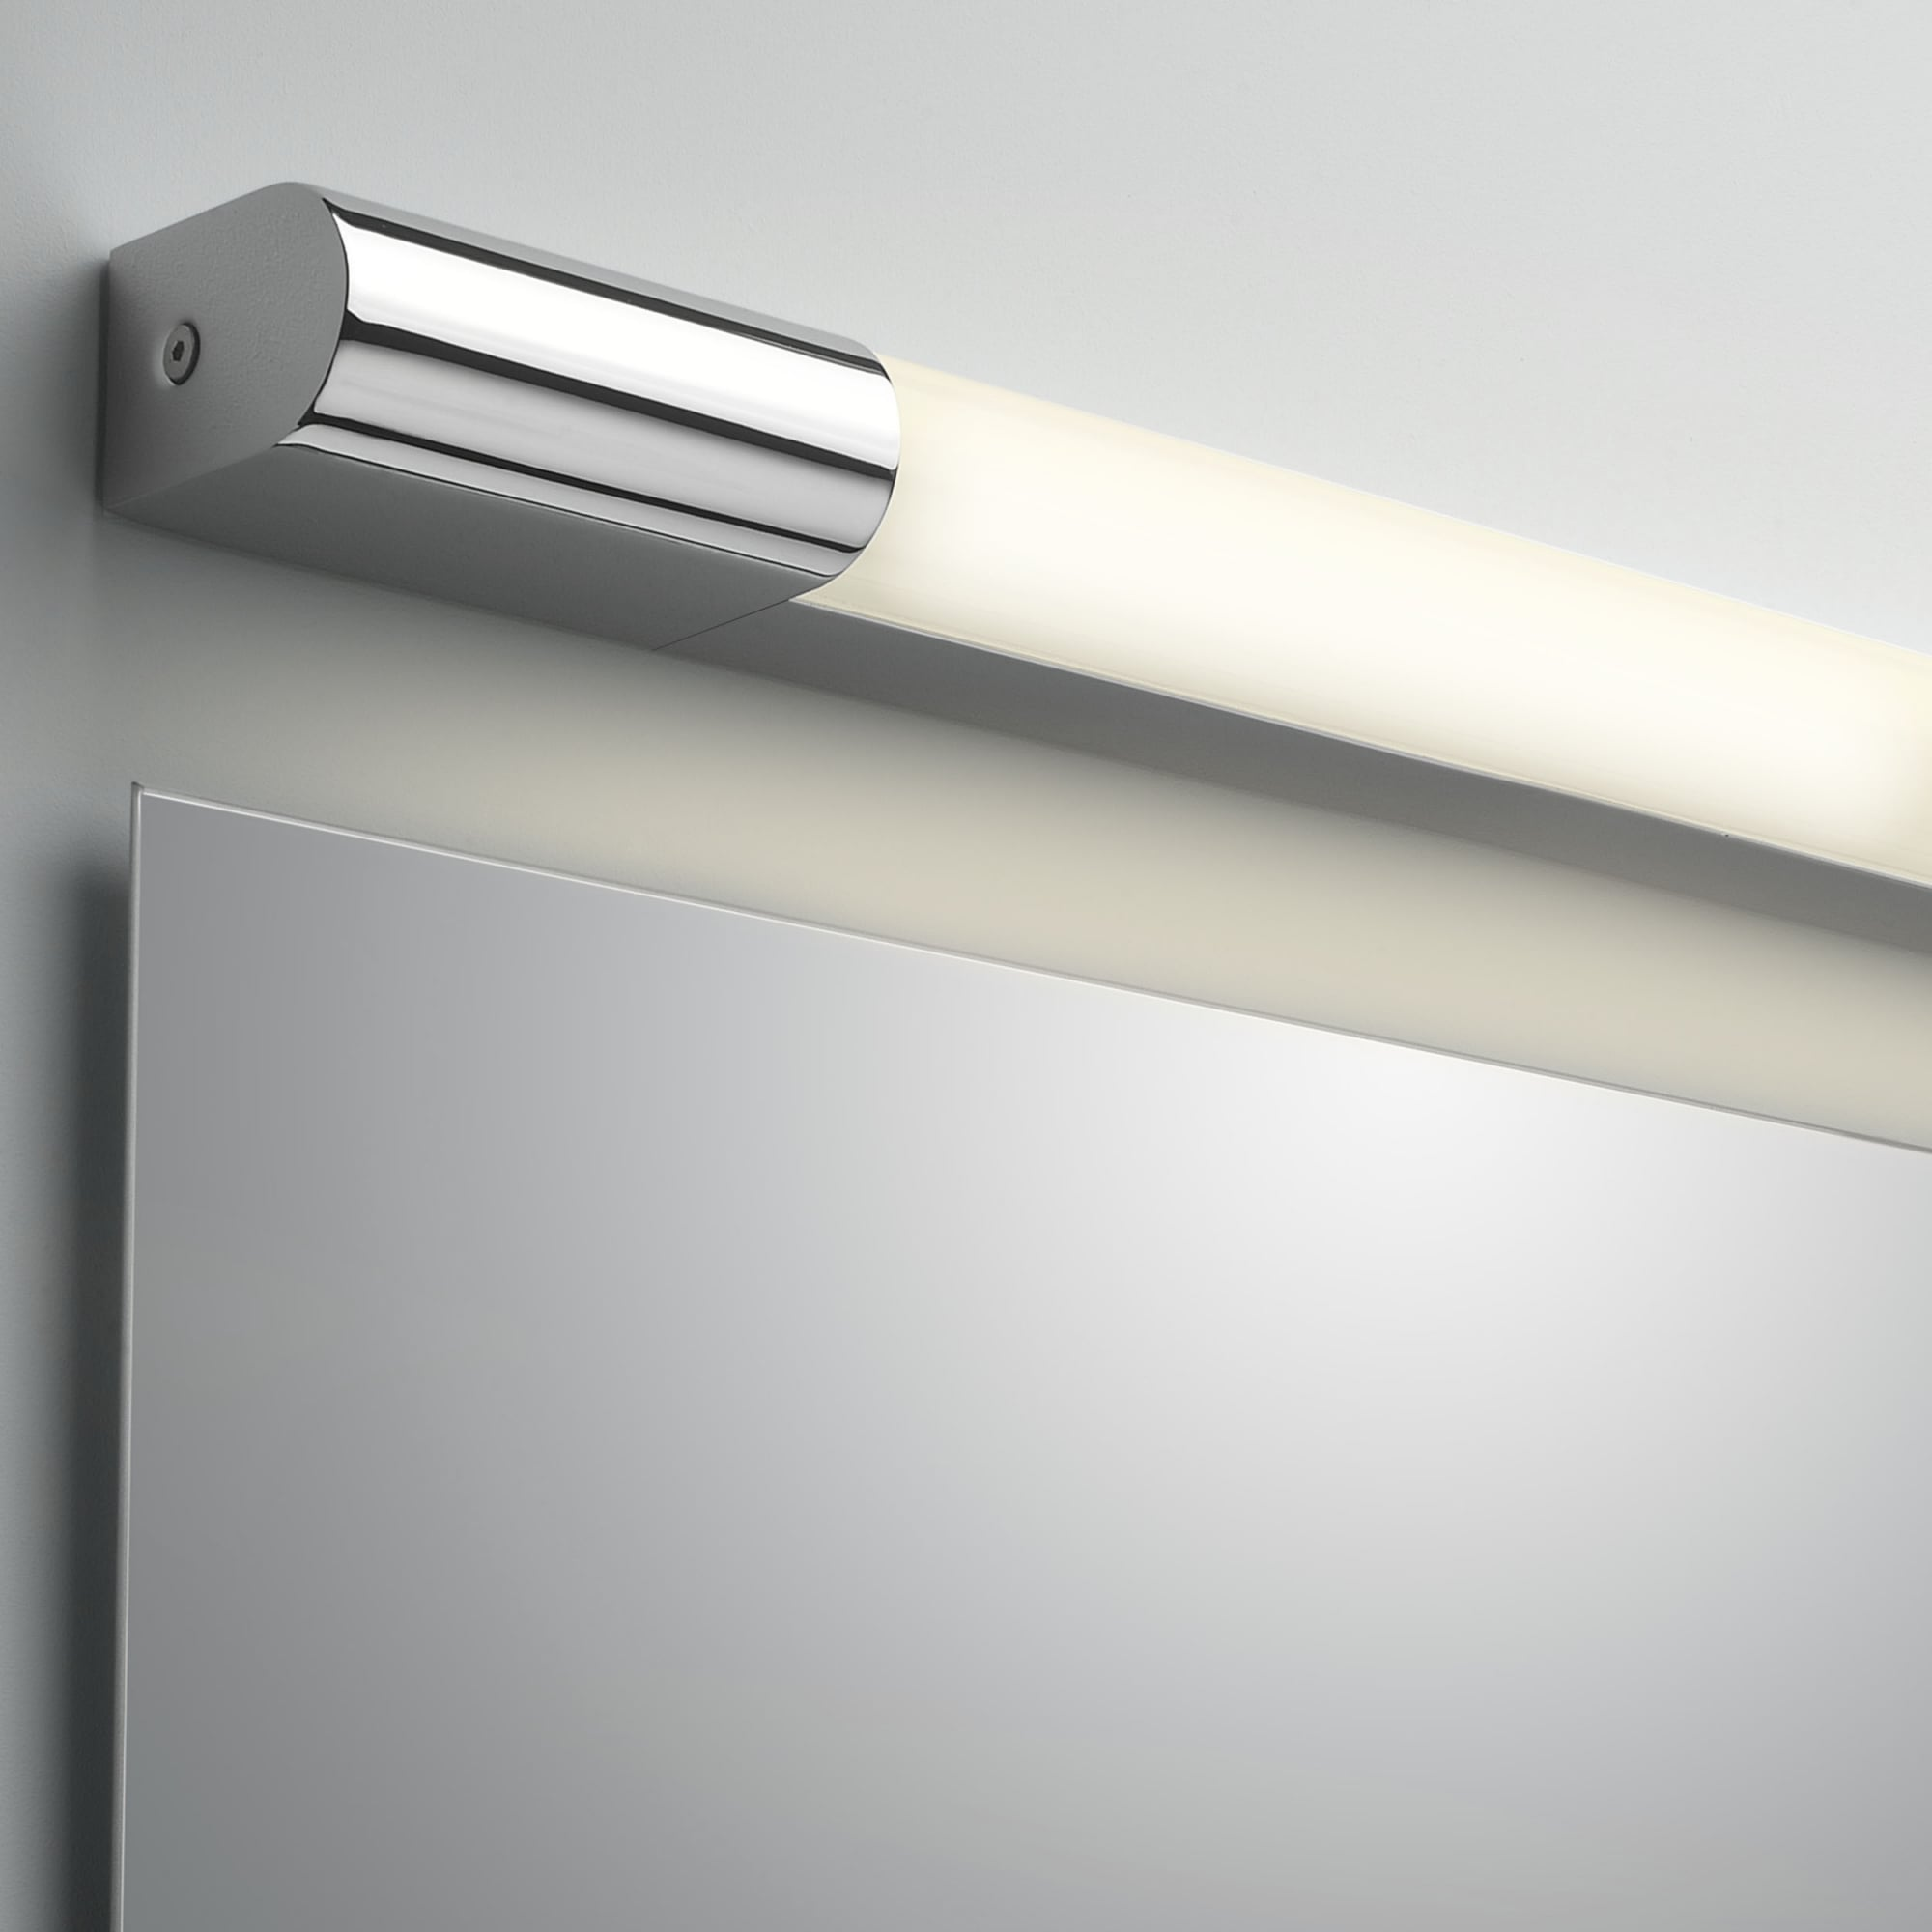 Led Bathroom Wall Lights Uk: Astro 7619 Palermo 600 LED IP44 Bathroom Wall Light Chrome